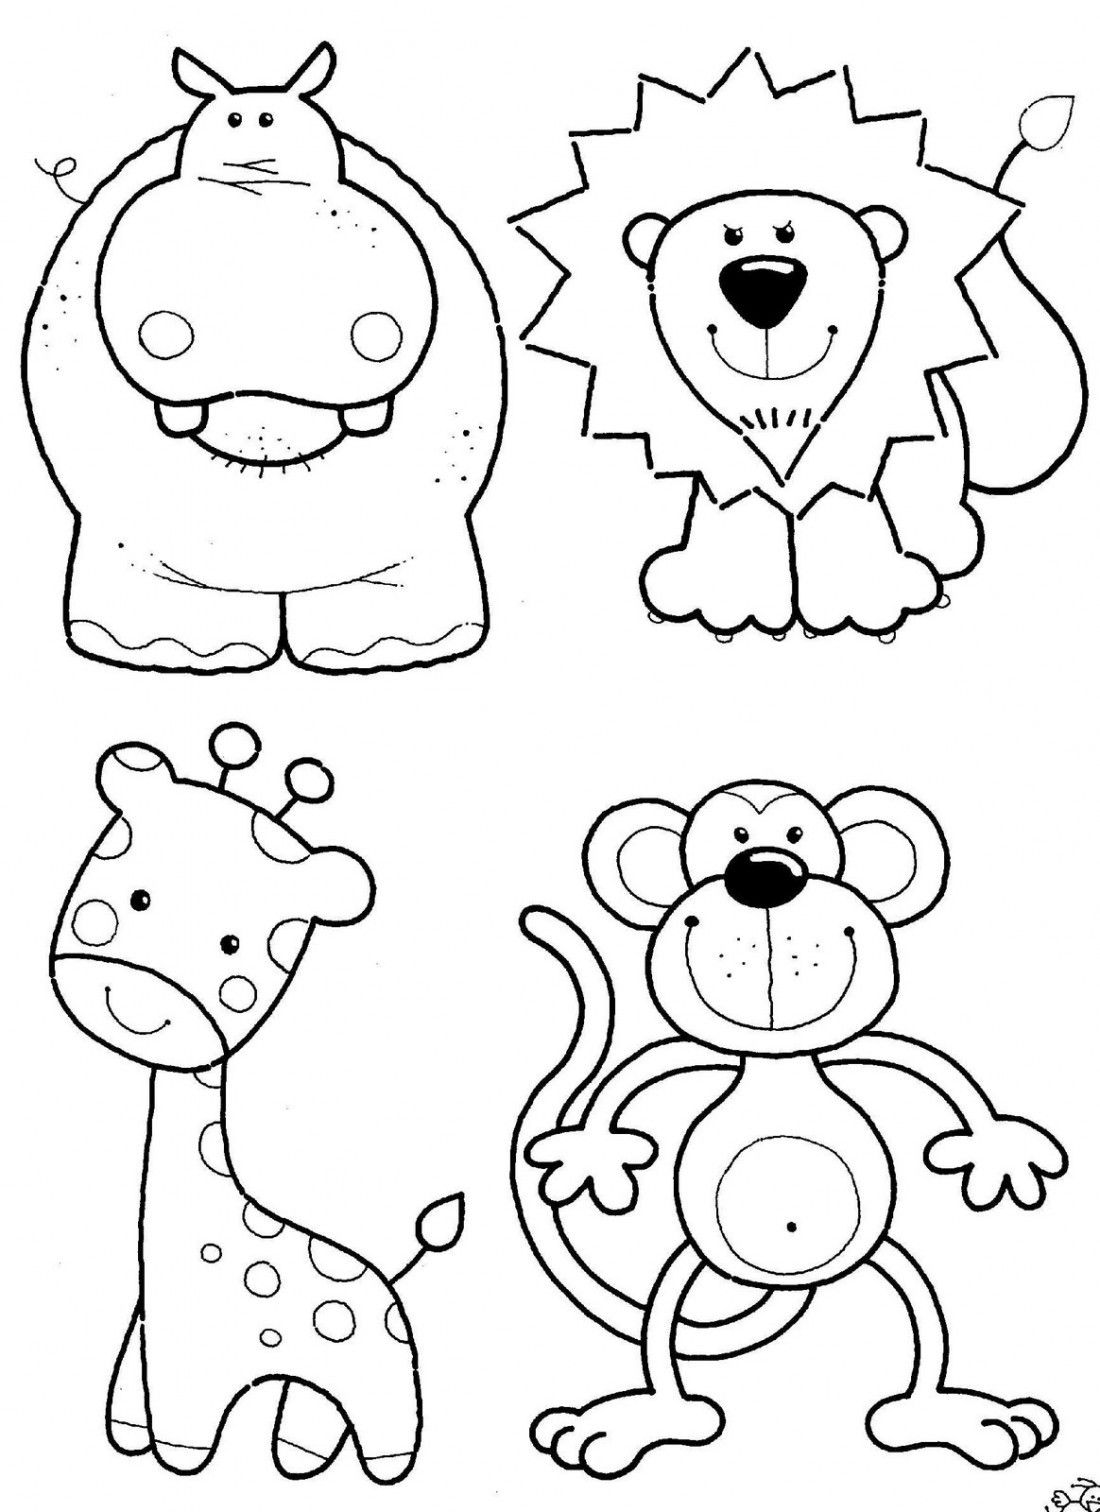 Printable Animal Coloring Pages For Kids  Fish Sea Animals Coloring Pages For Kids Printable 1095